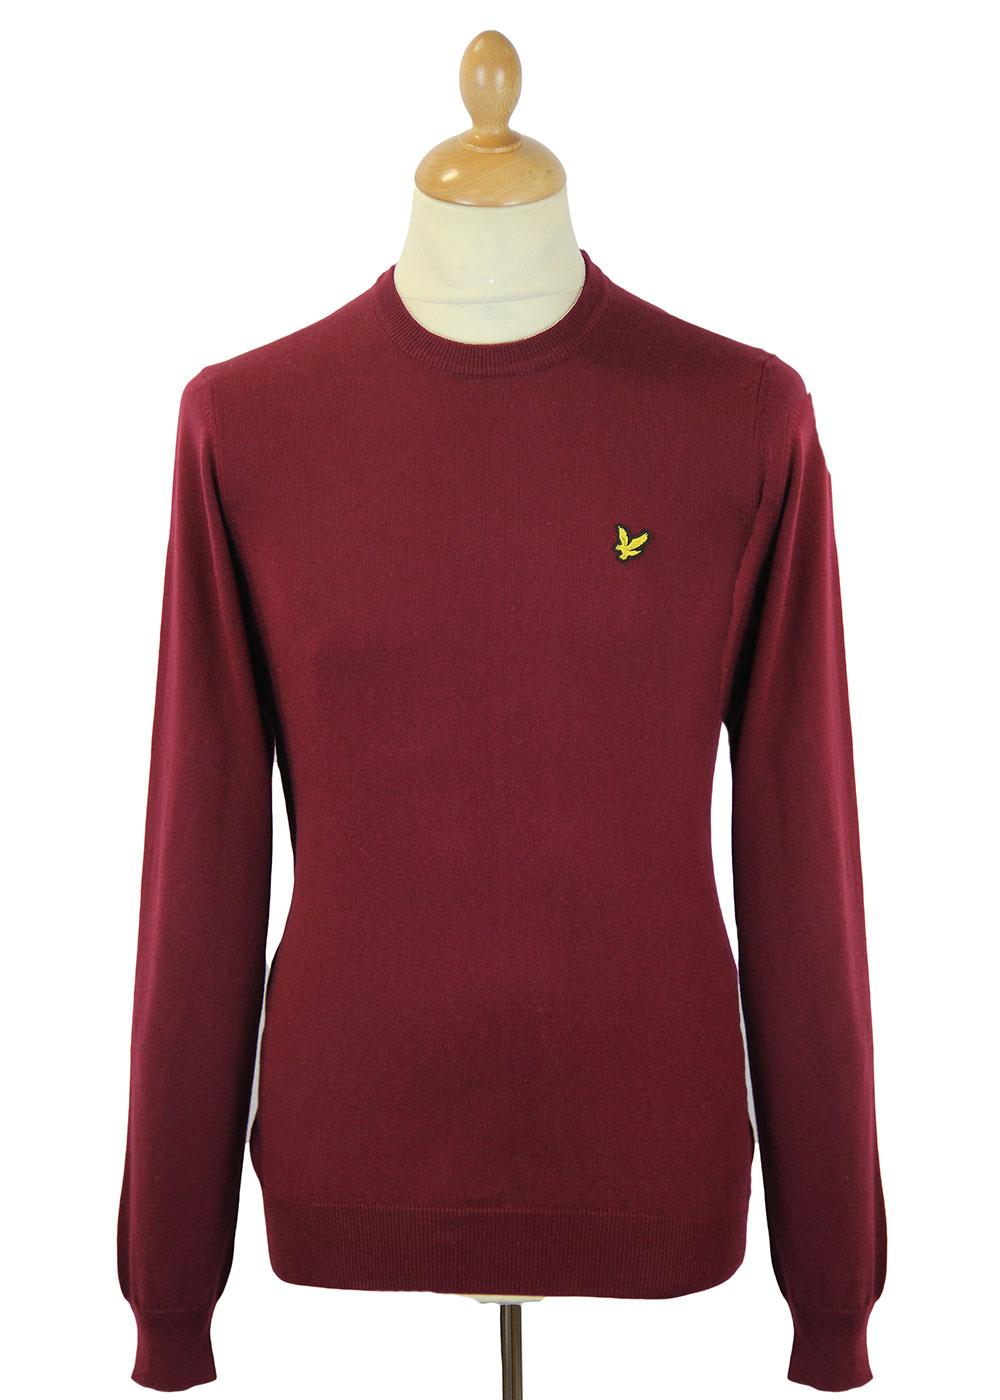 LYLE & SCOTT Retro Mod Cotton Crew Neck Jumper (C)